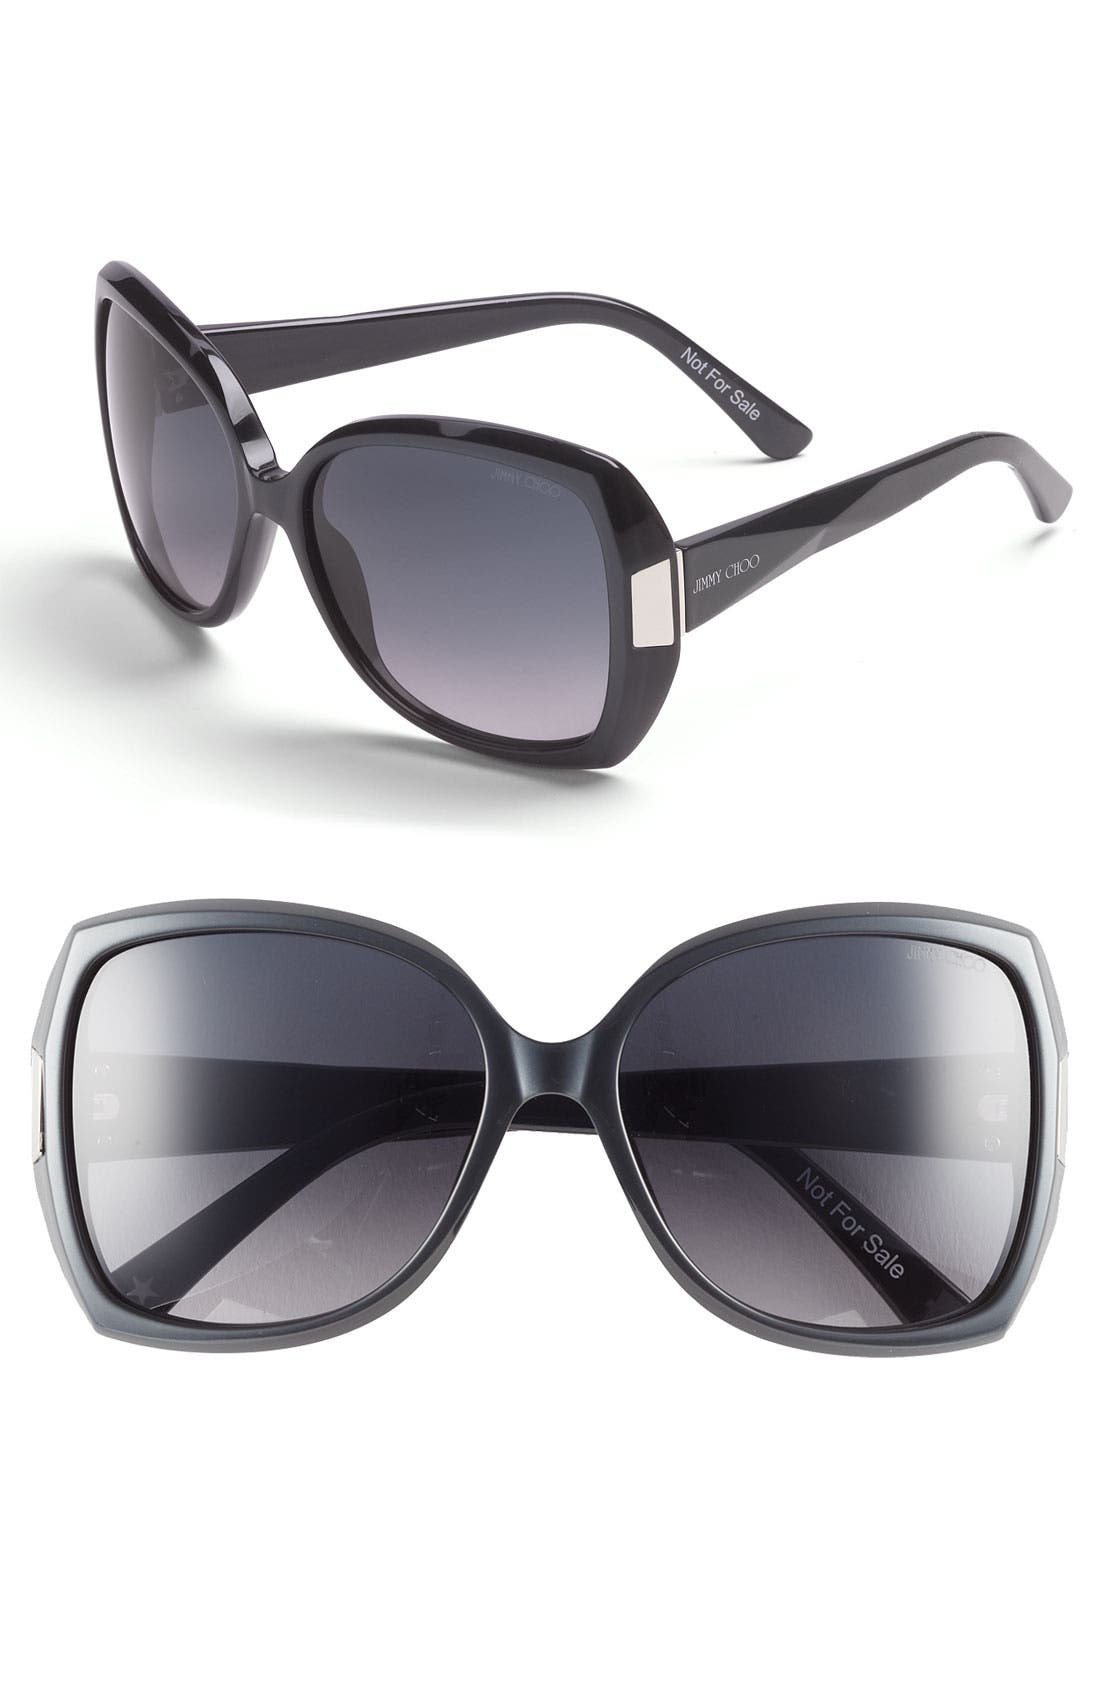 Main Image - Jimmy Choo 'Gaby' Oversized Sunglasses